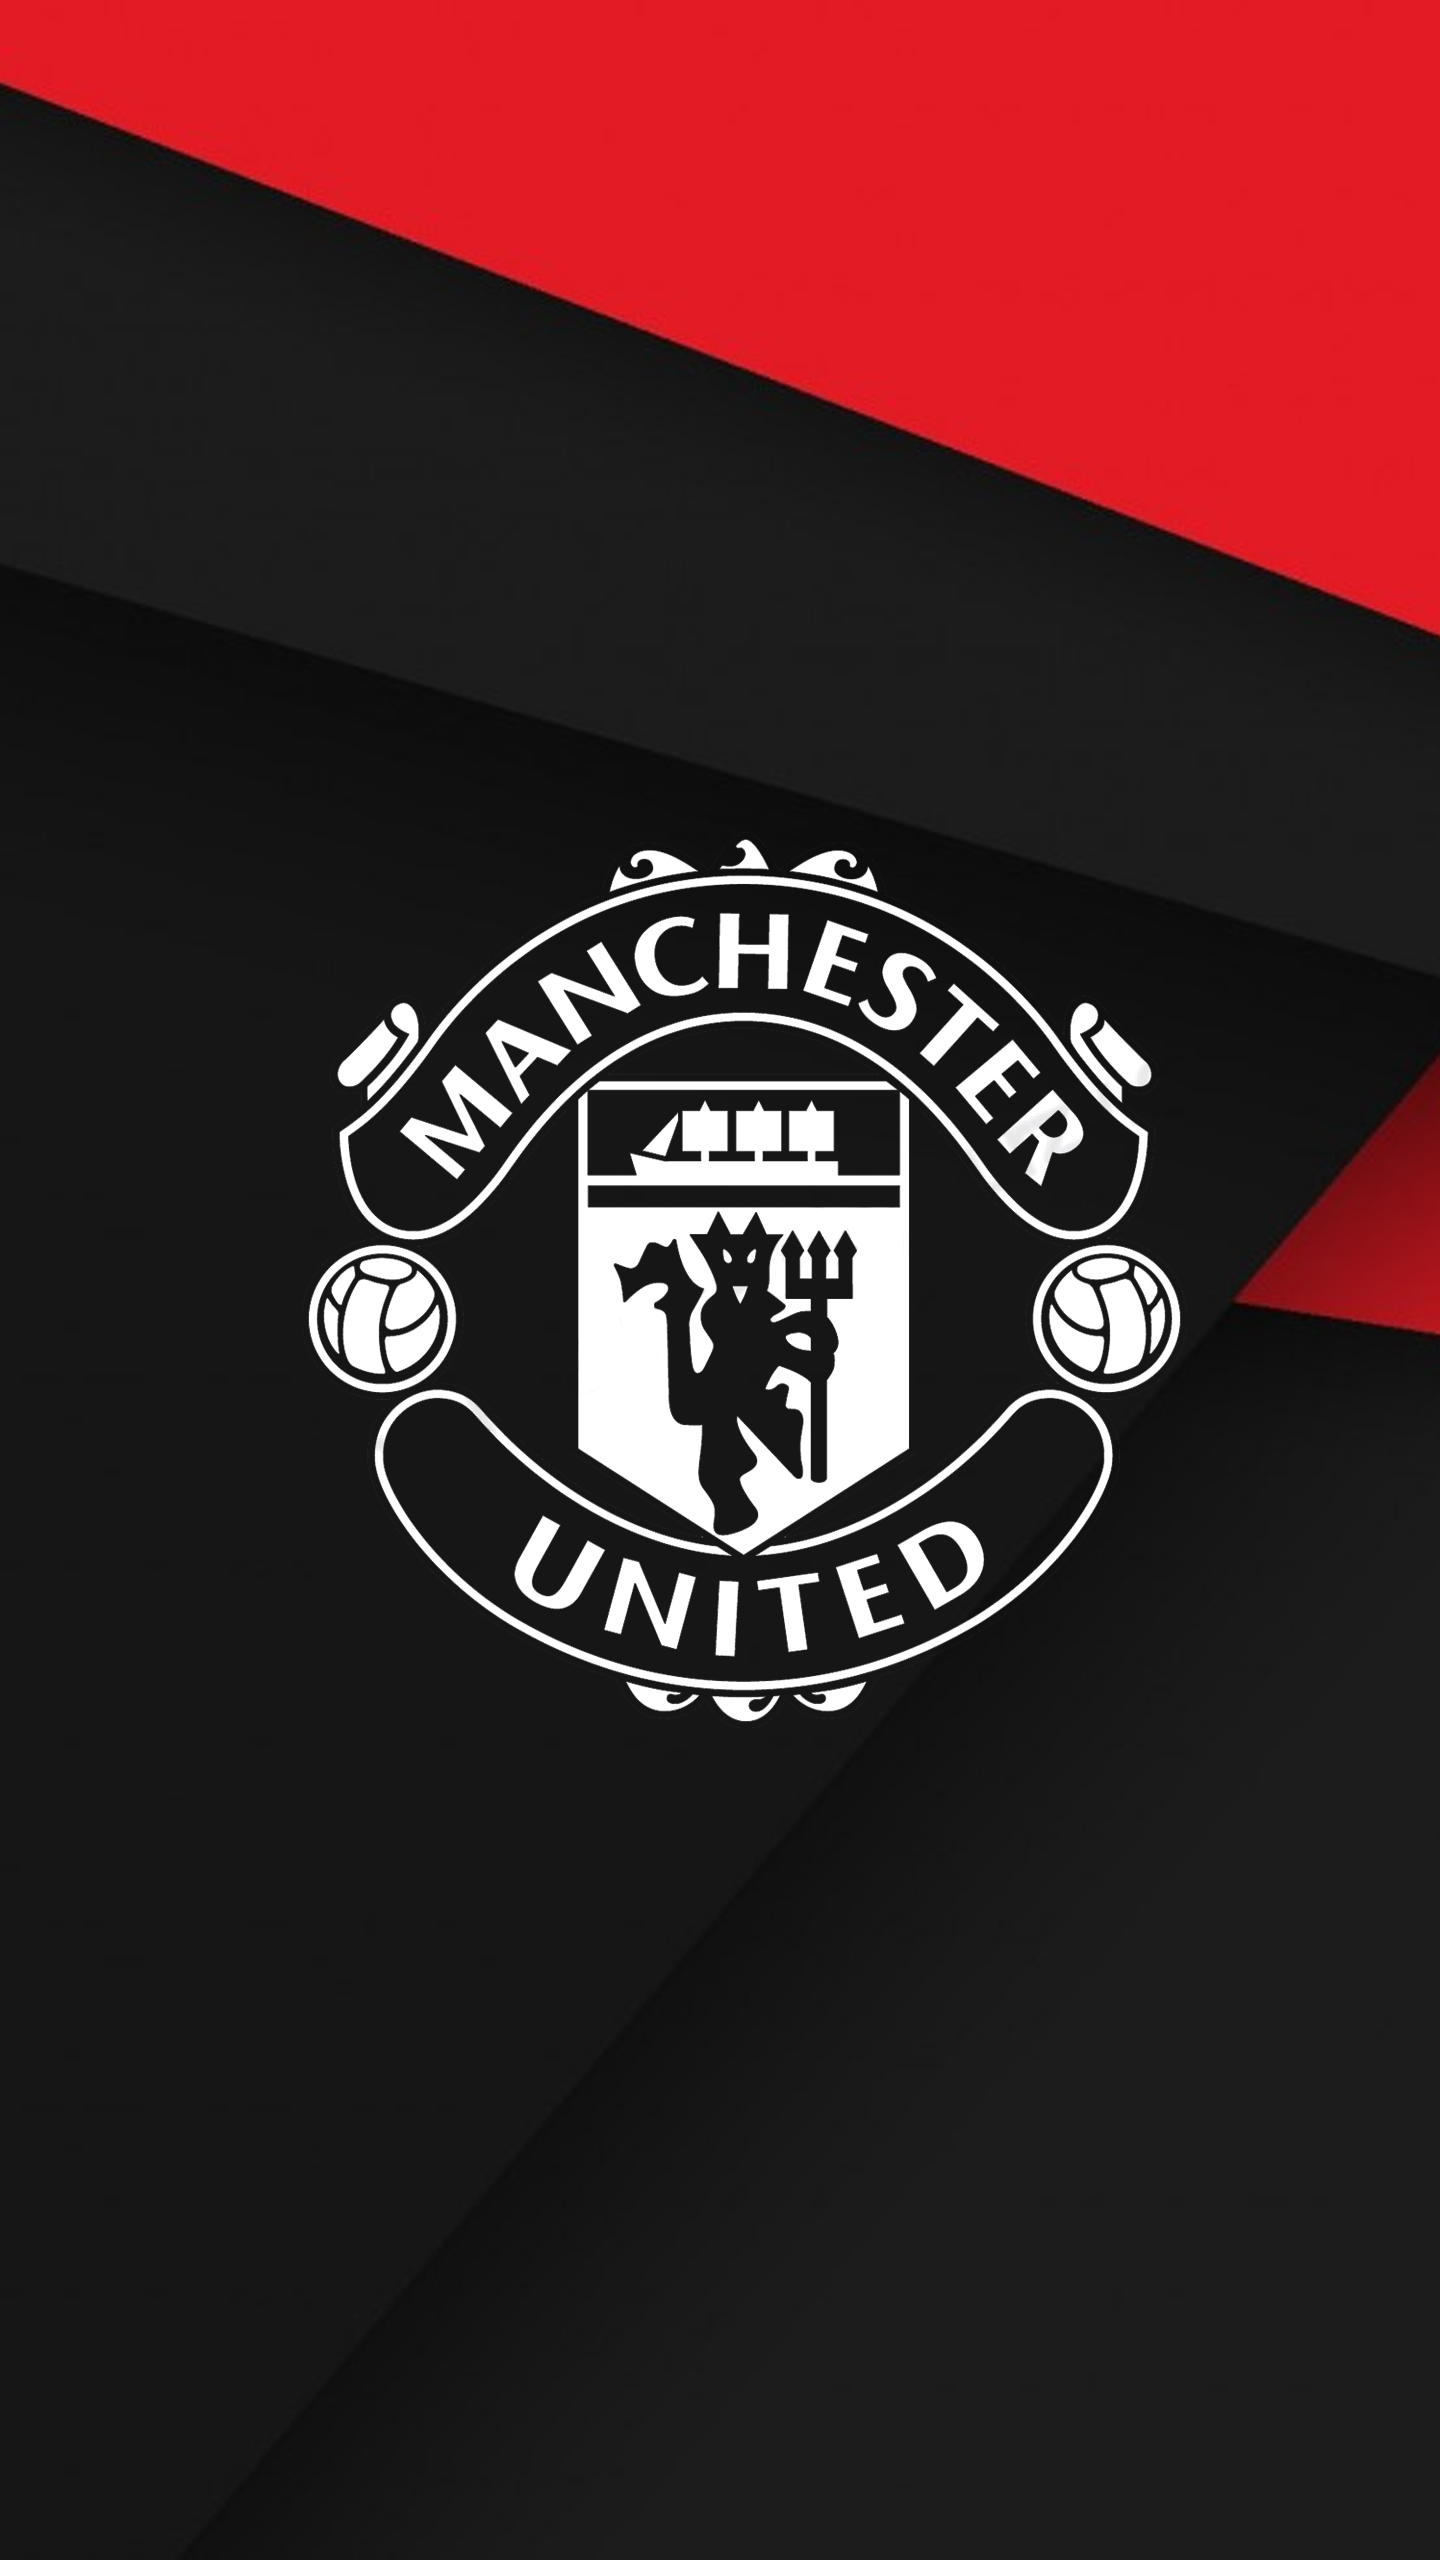 Manchester United Macbook Wallpaper Hd Football In 2020 Manchester United Logo Manchester United Fans Manchester United Wallpaper